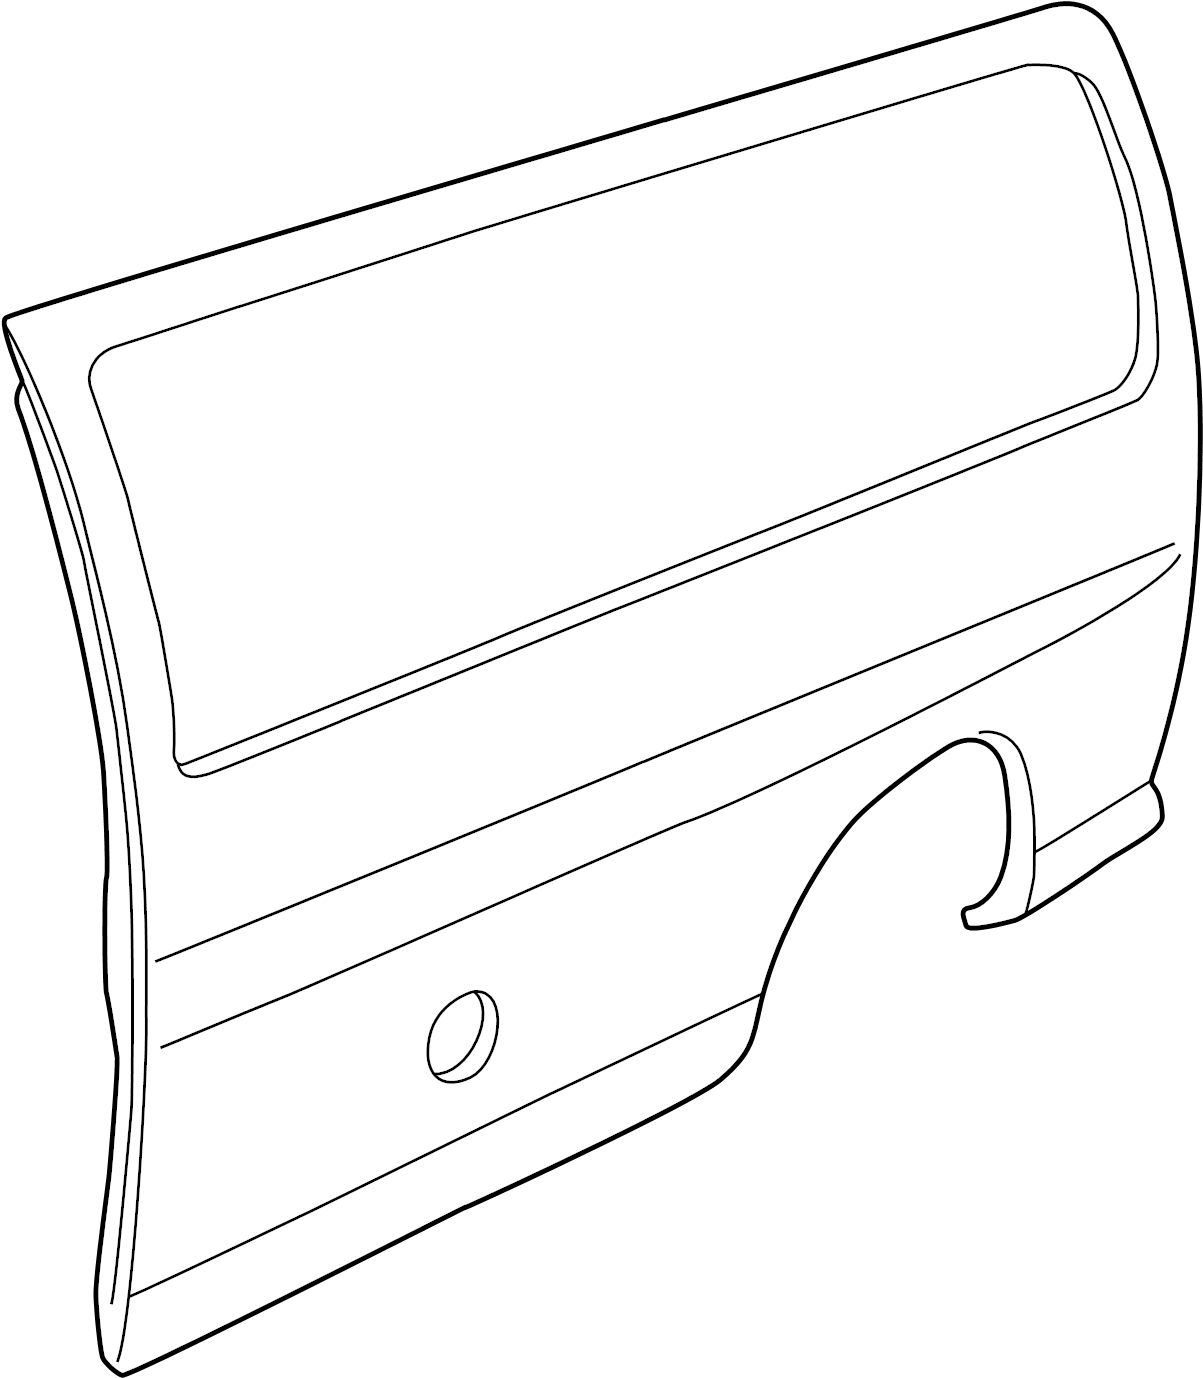 2008 GMC Savana 2500 Quarter Panel (Upper, Lower). Side